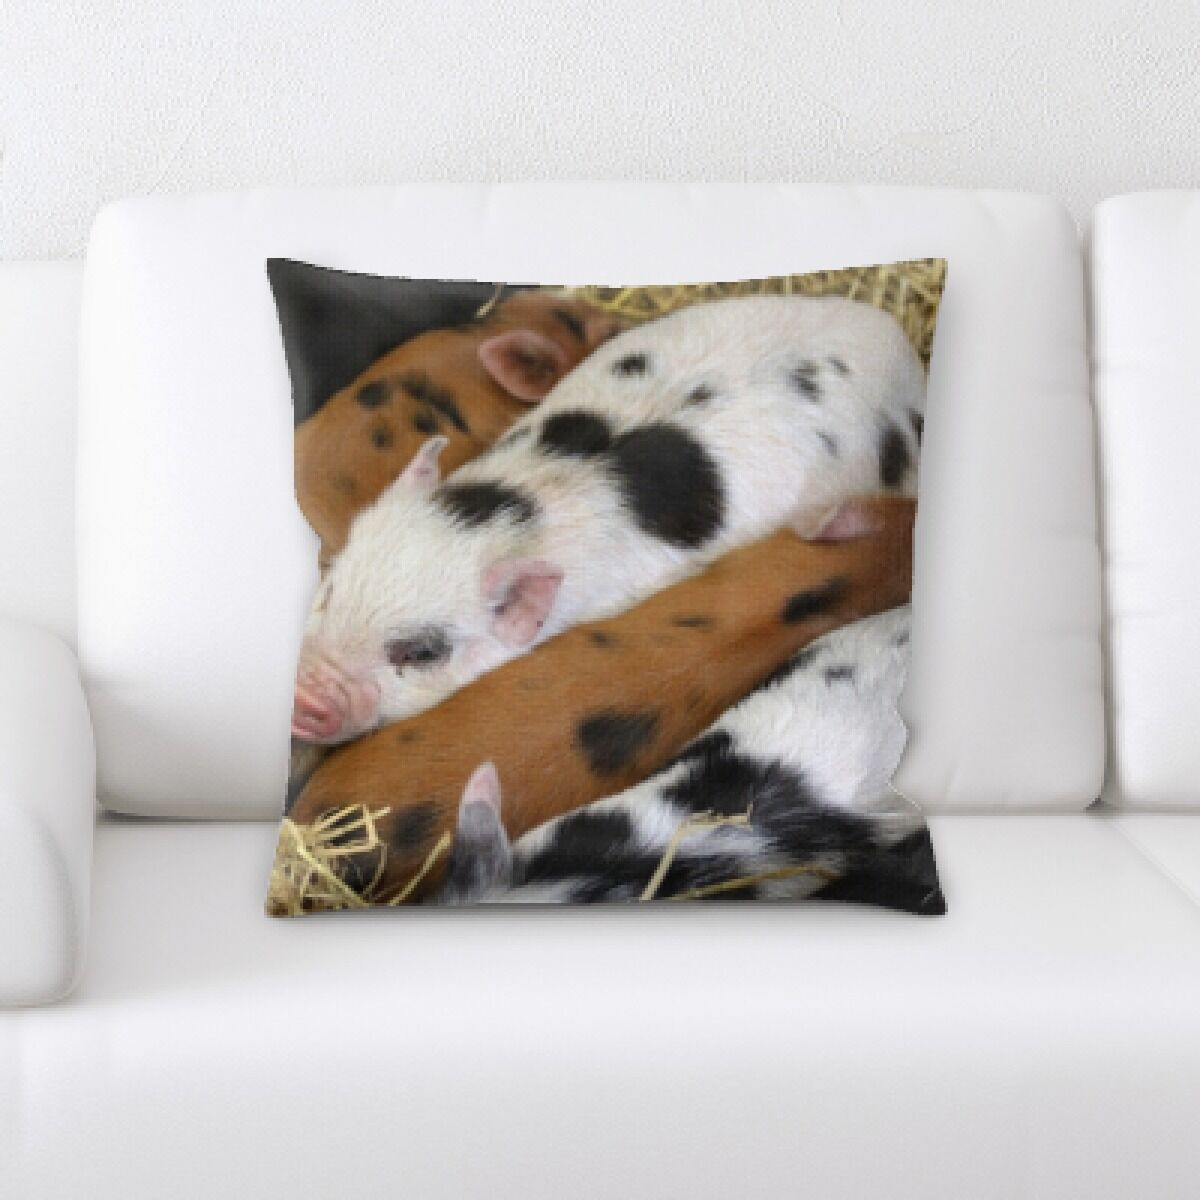 Amatia Pig (4) Throw Pillow